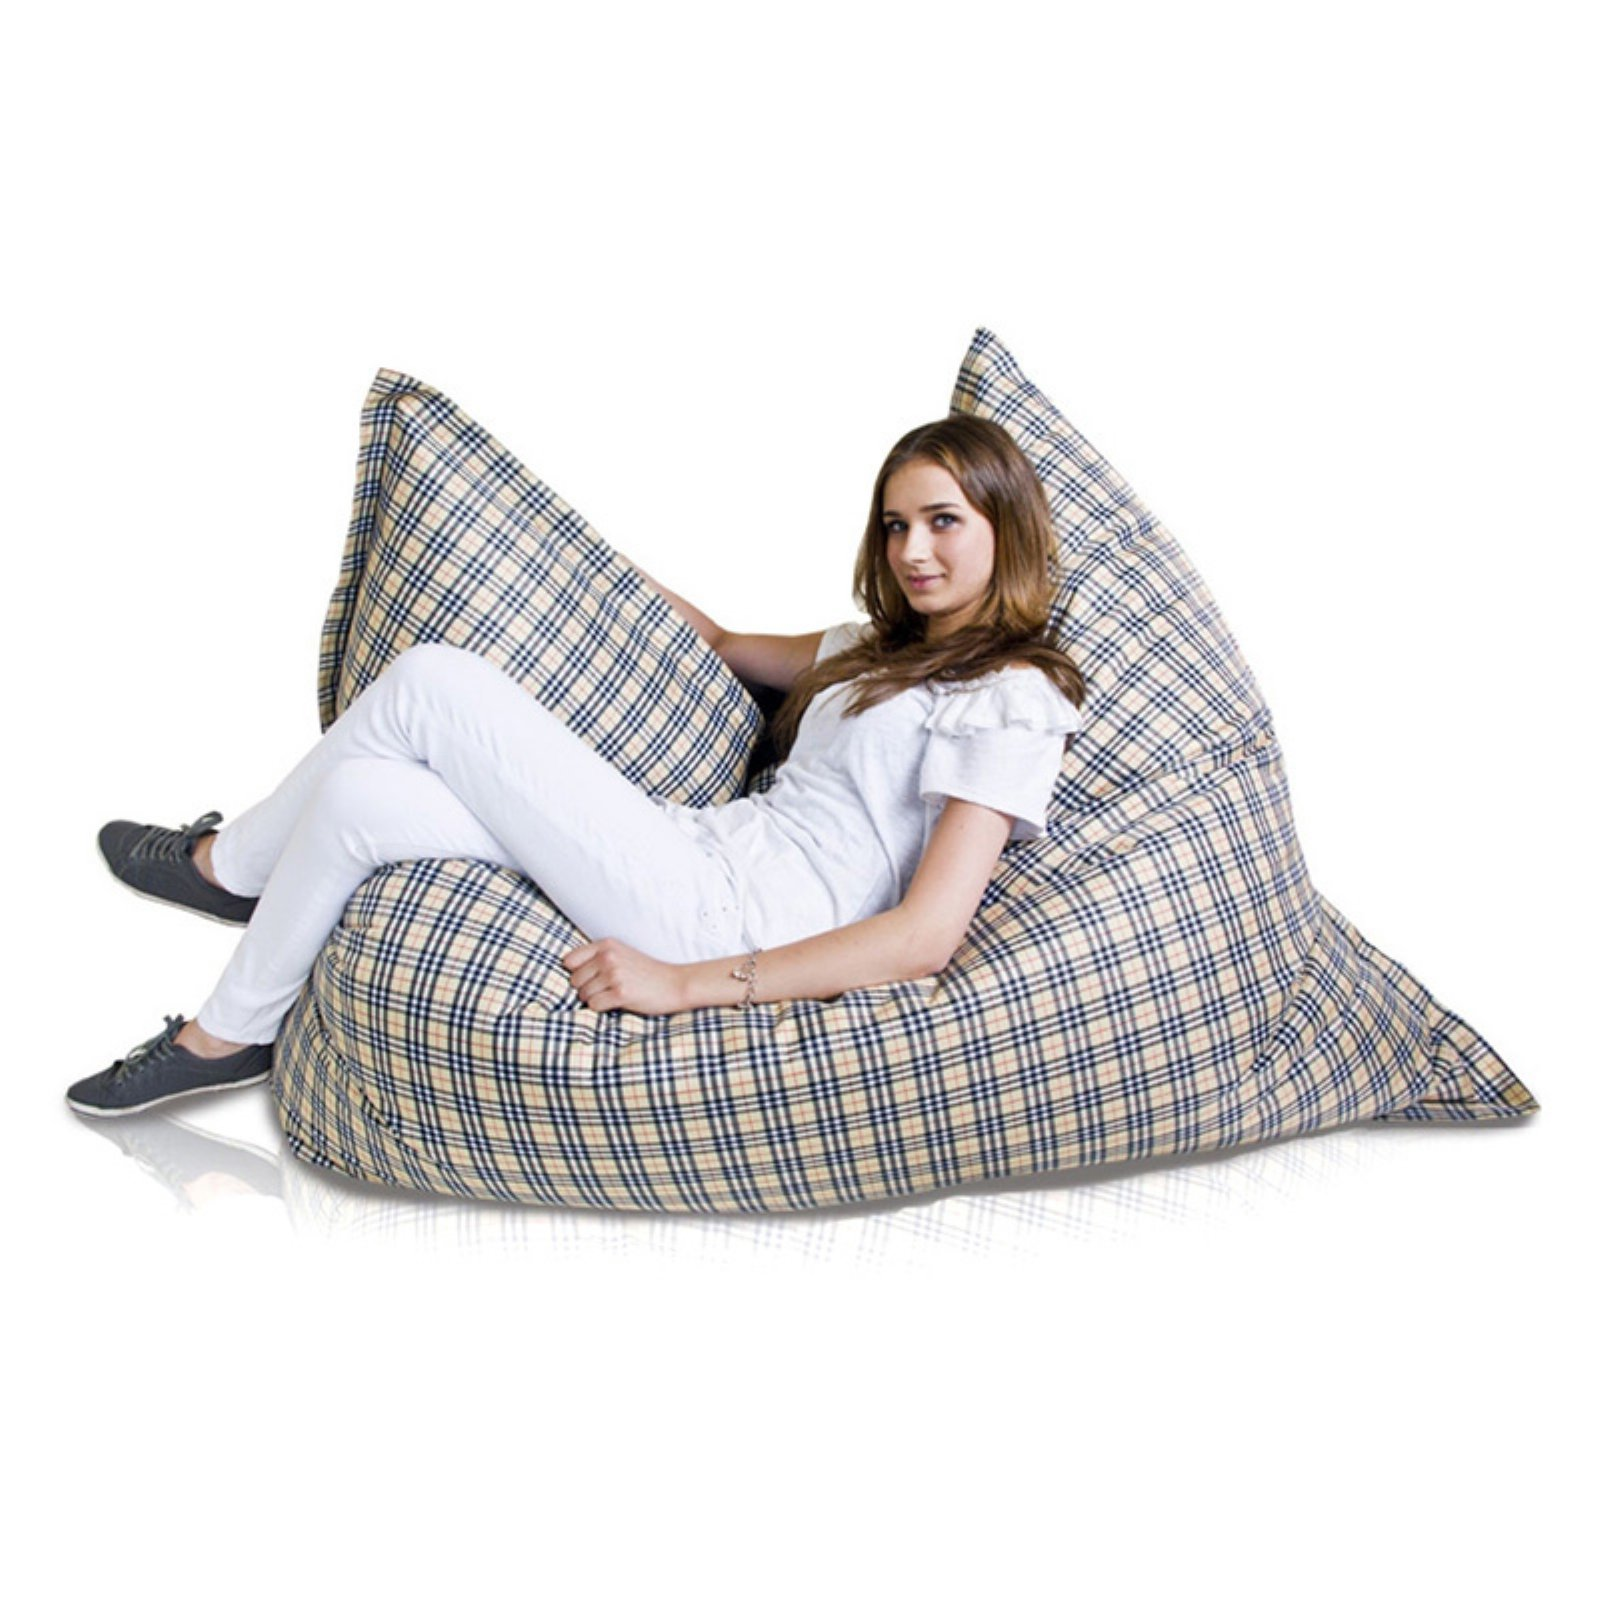 Turbo Beanbags Pillow Style Premium Large Bean Bag Chair - Plaid